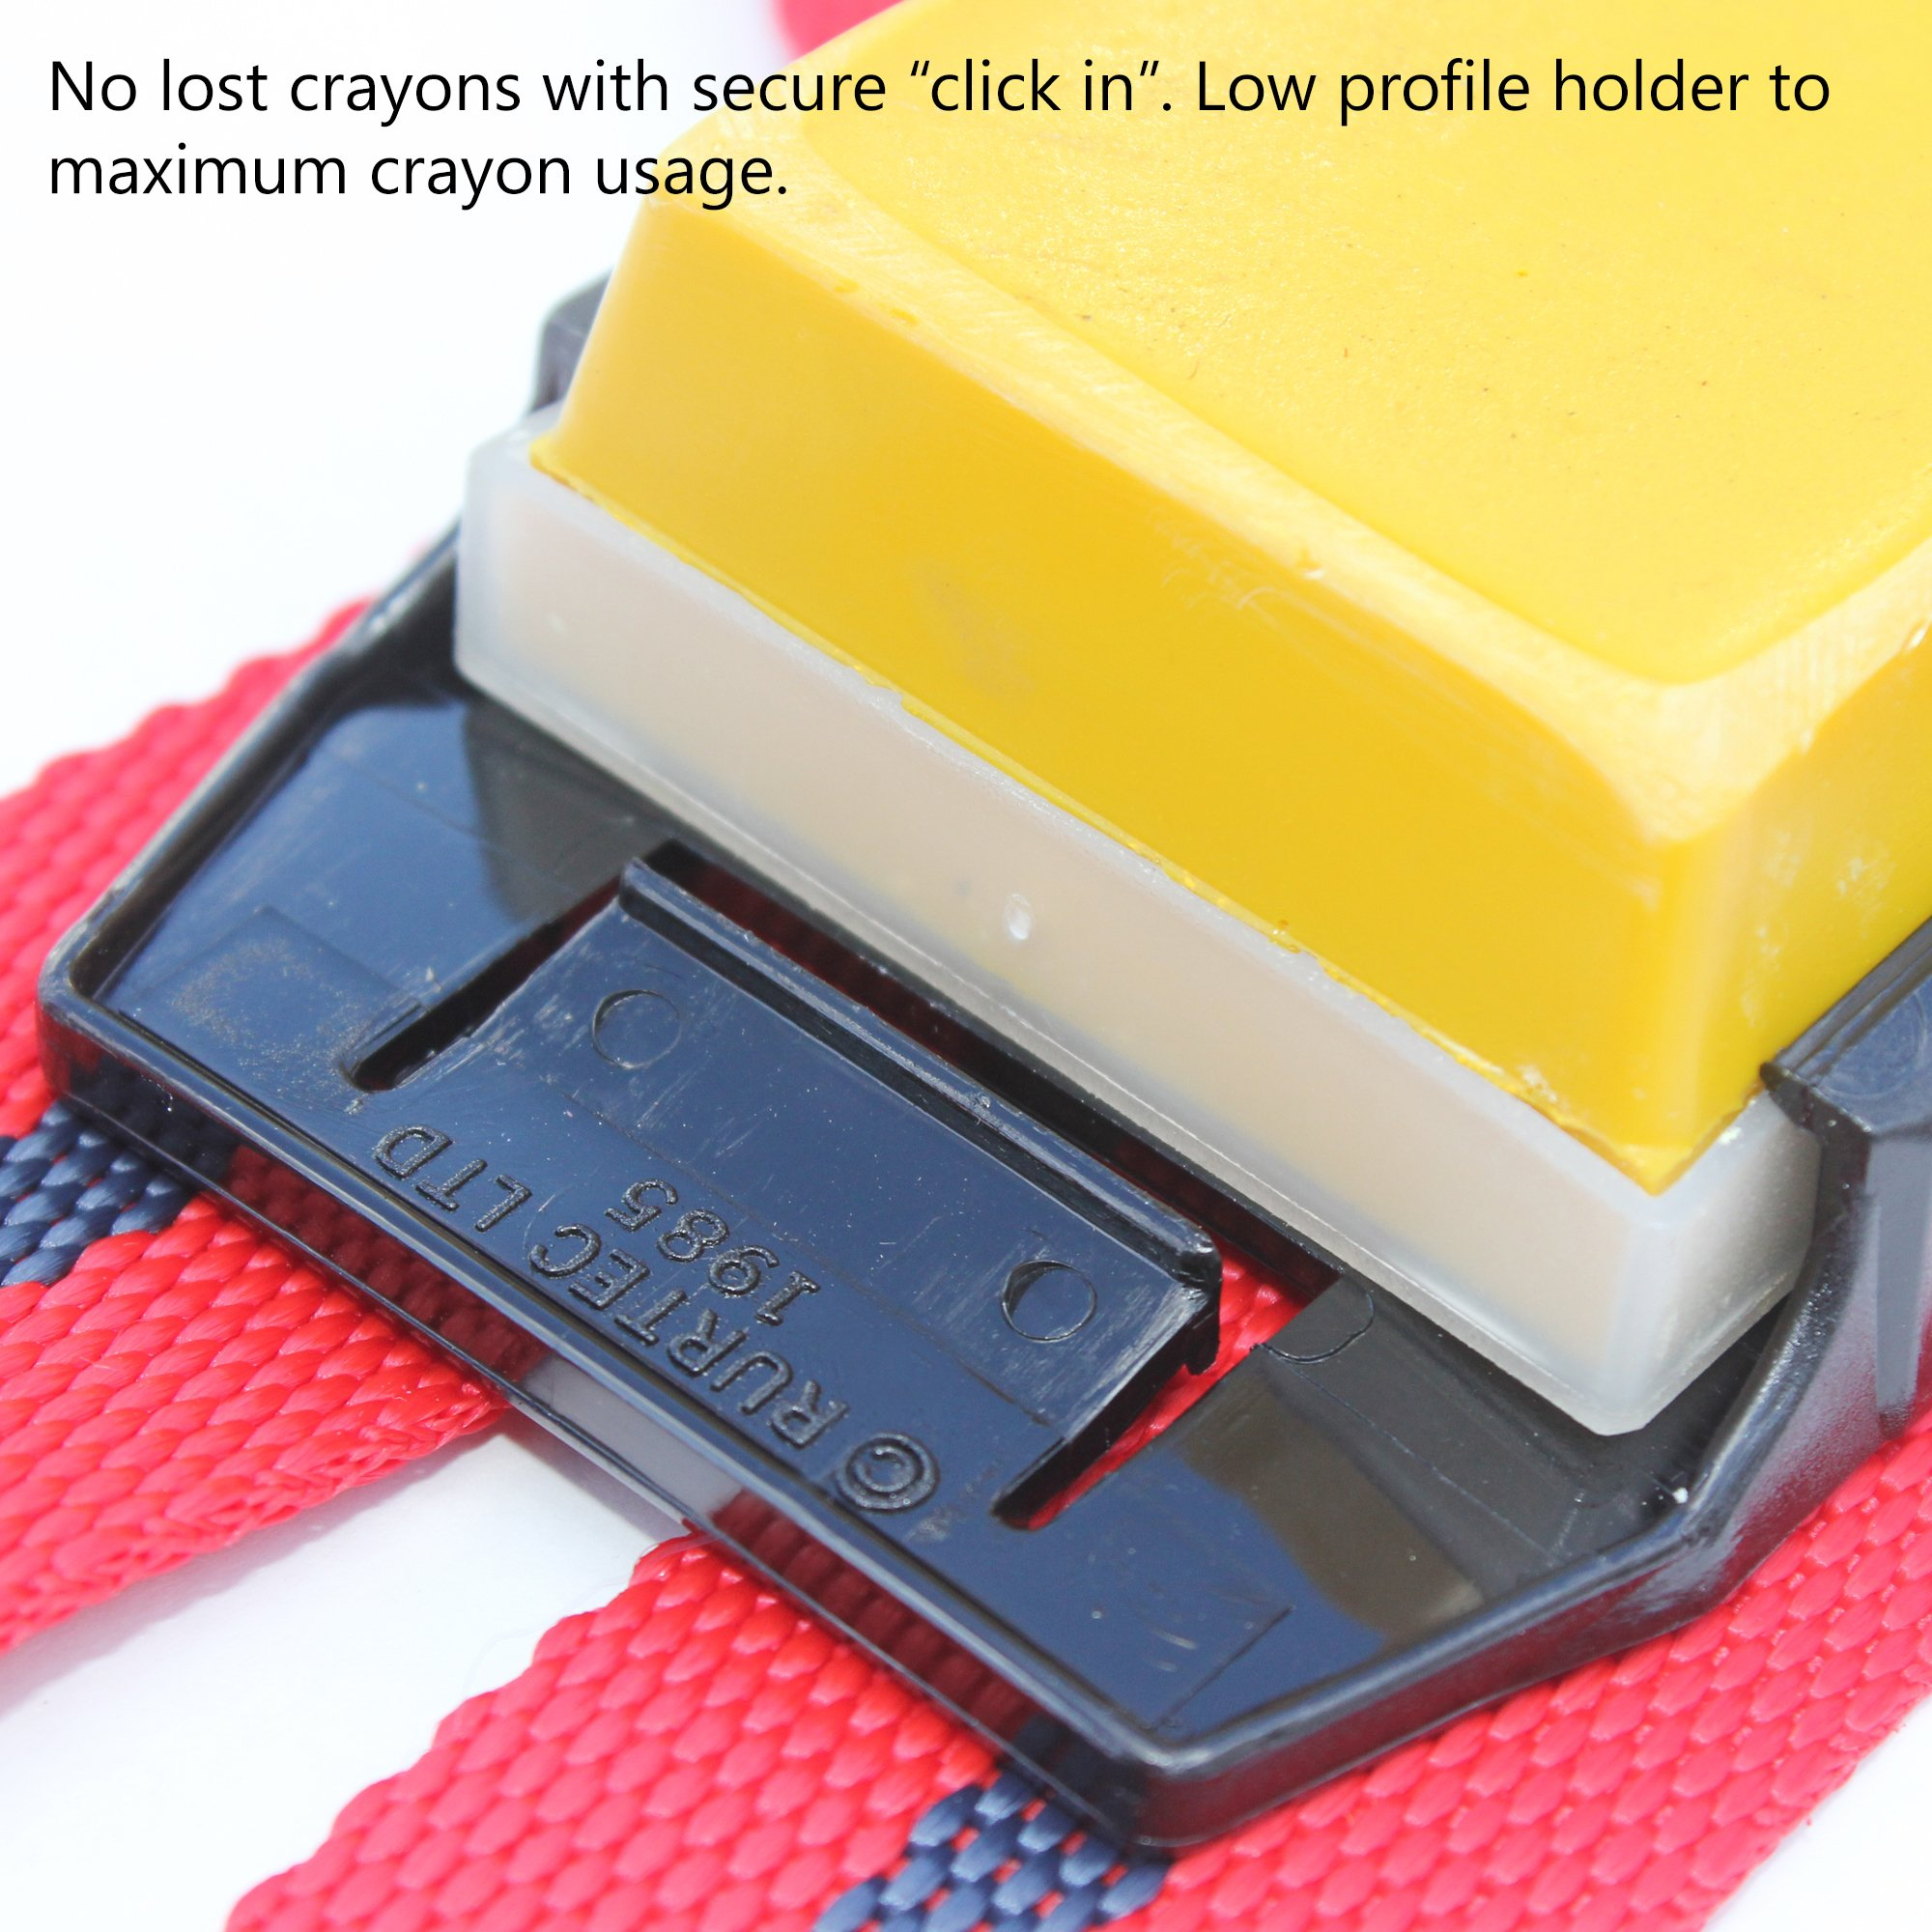 MATINGMARK Deluxe Ram Marking Harness for Monitoring Breeding Sheep & Goats by Rurtec, Crayon Block Marker System, Made in New Zealand - Standard Size (Crayon Sold Separately) by MATINGMARK (Image #7)